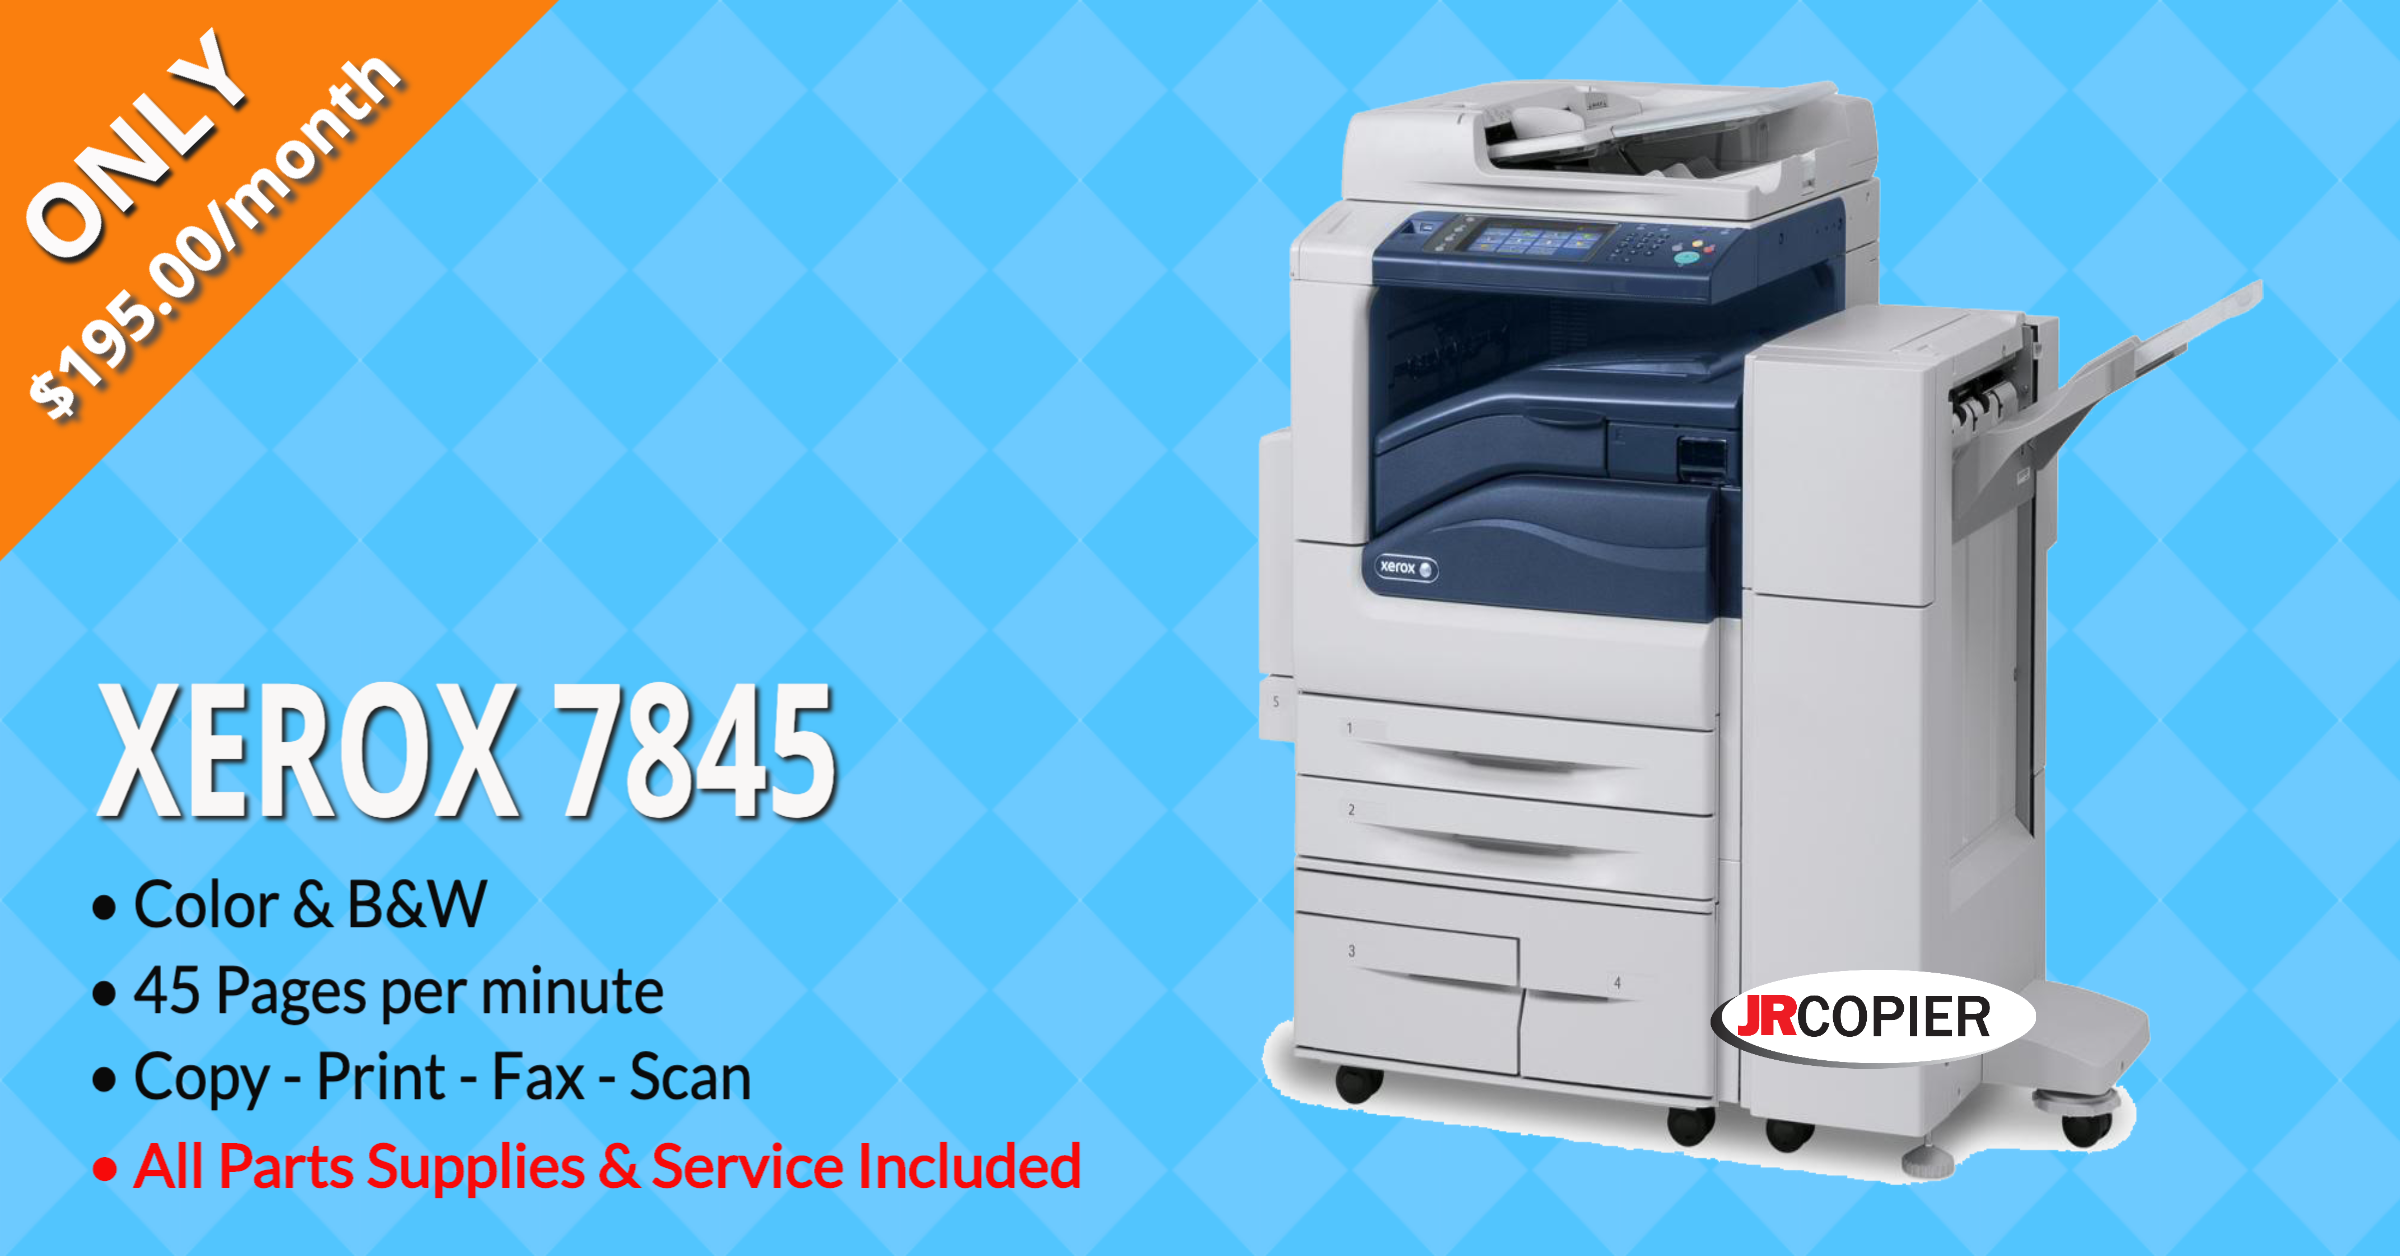 Printer Leasing Company 25510, 25526